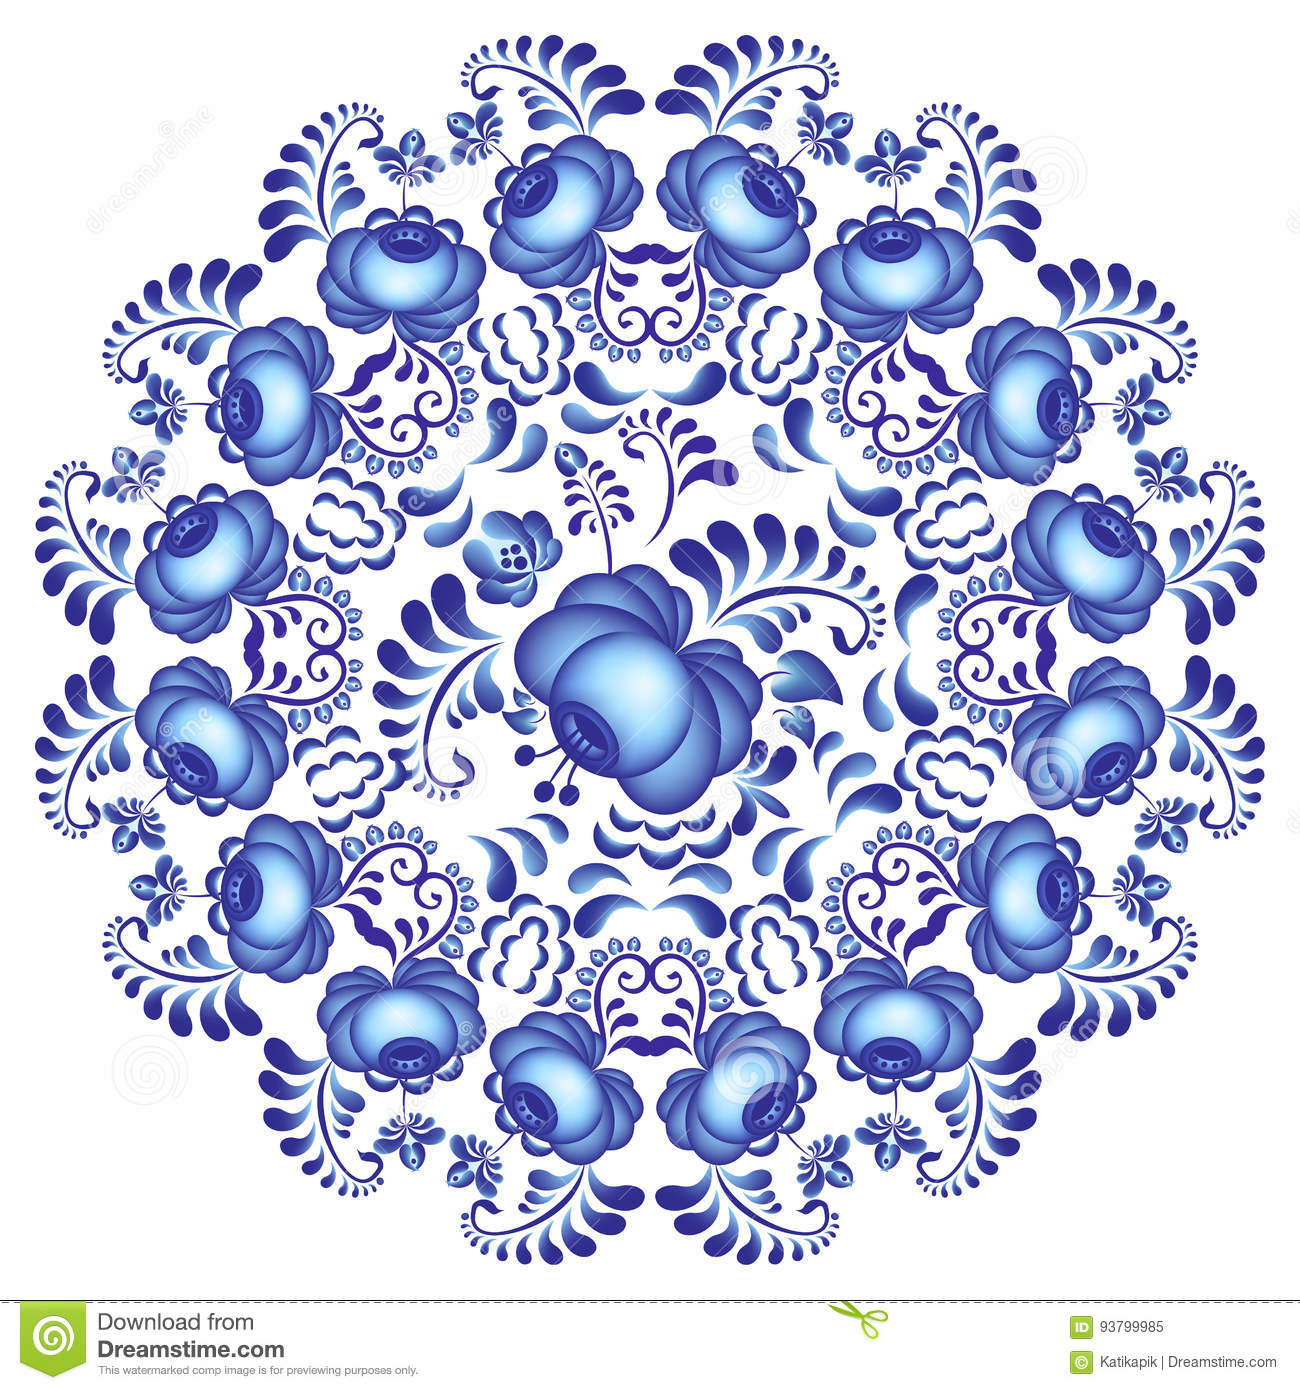 Artistic floral element abstract gzhel folk art blue flowers stock - Blue Design Element Flower Gzhel